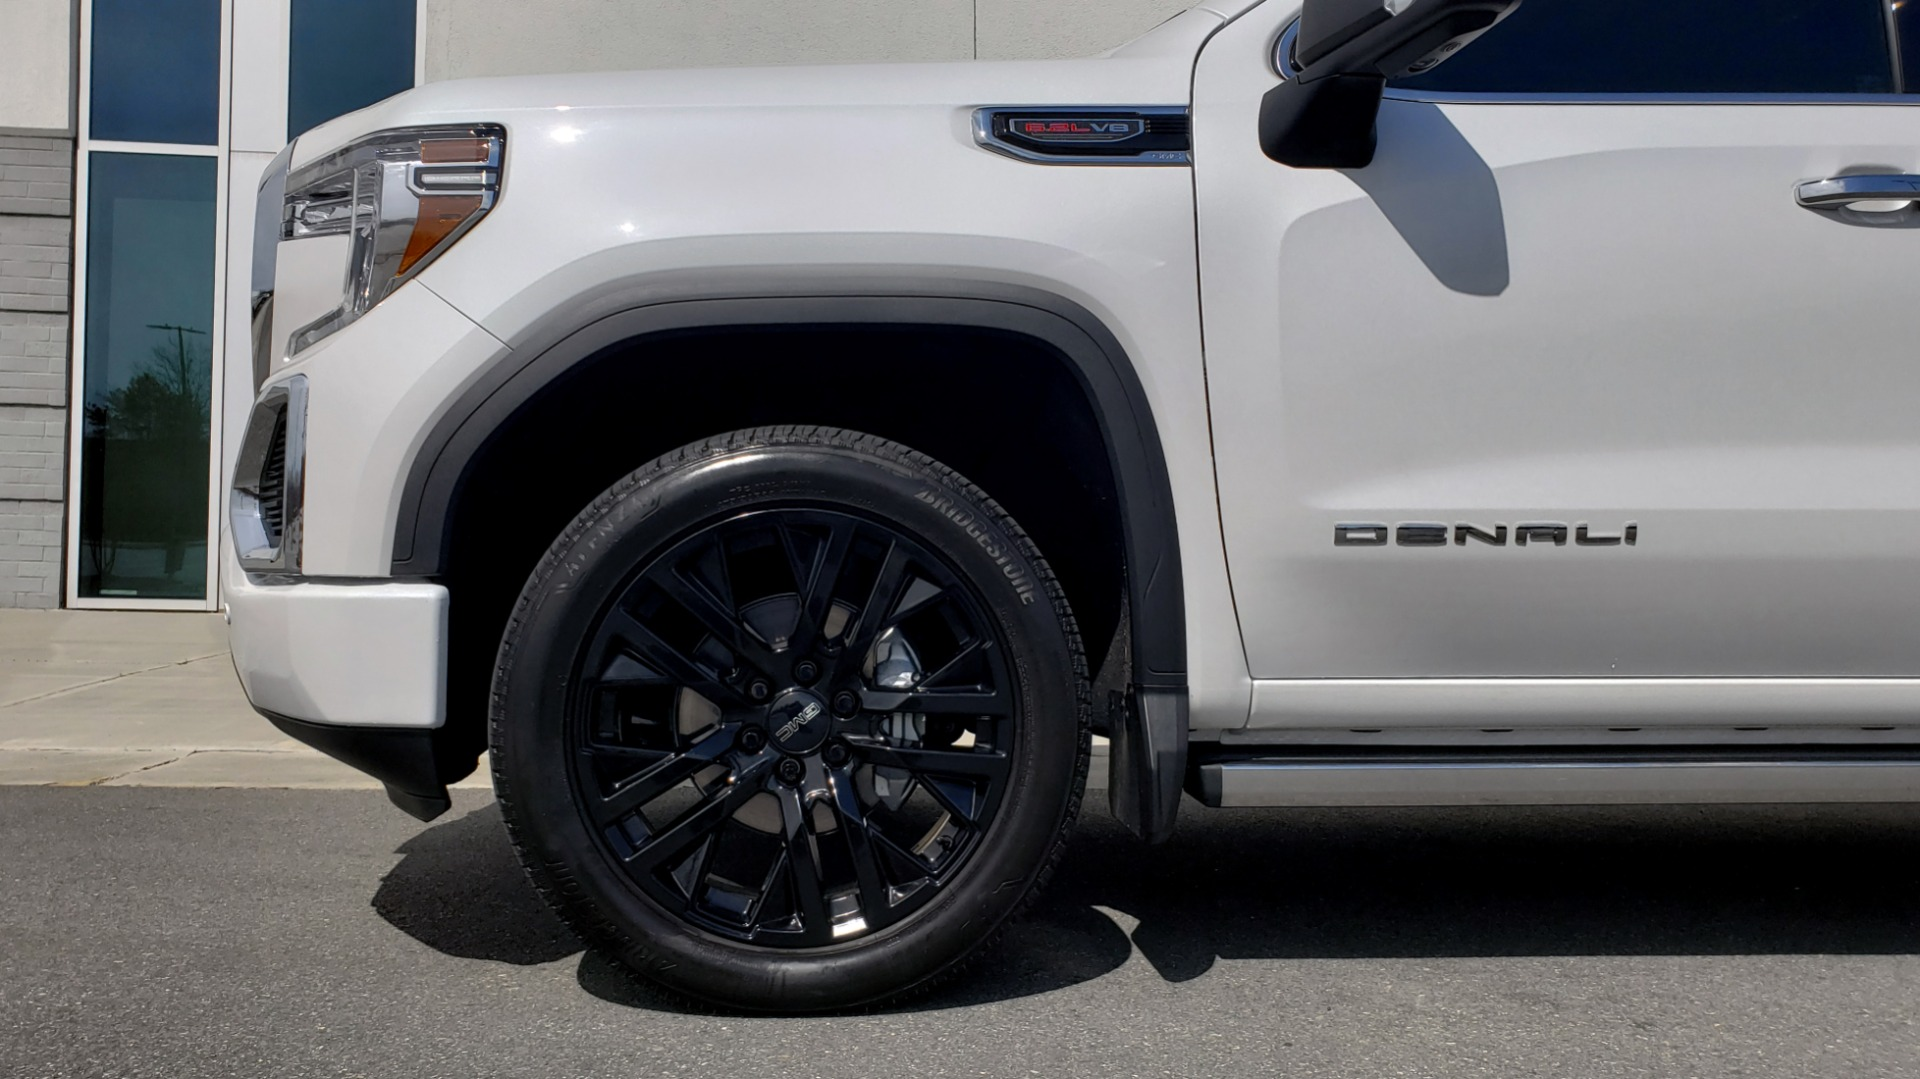 Used 2020 GMC SIERRA 1500 DENALI 4X4 CREWCAB 6.2L V8 / TECH / NAV / SUNROOF / DRVR ALERT II for sale Sold at Formula Imports in Charlotte NC 28227 91